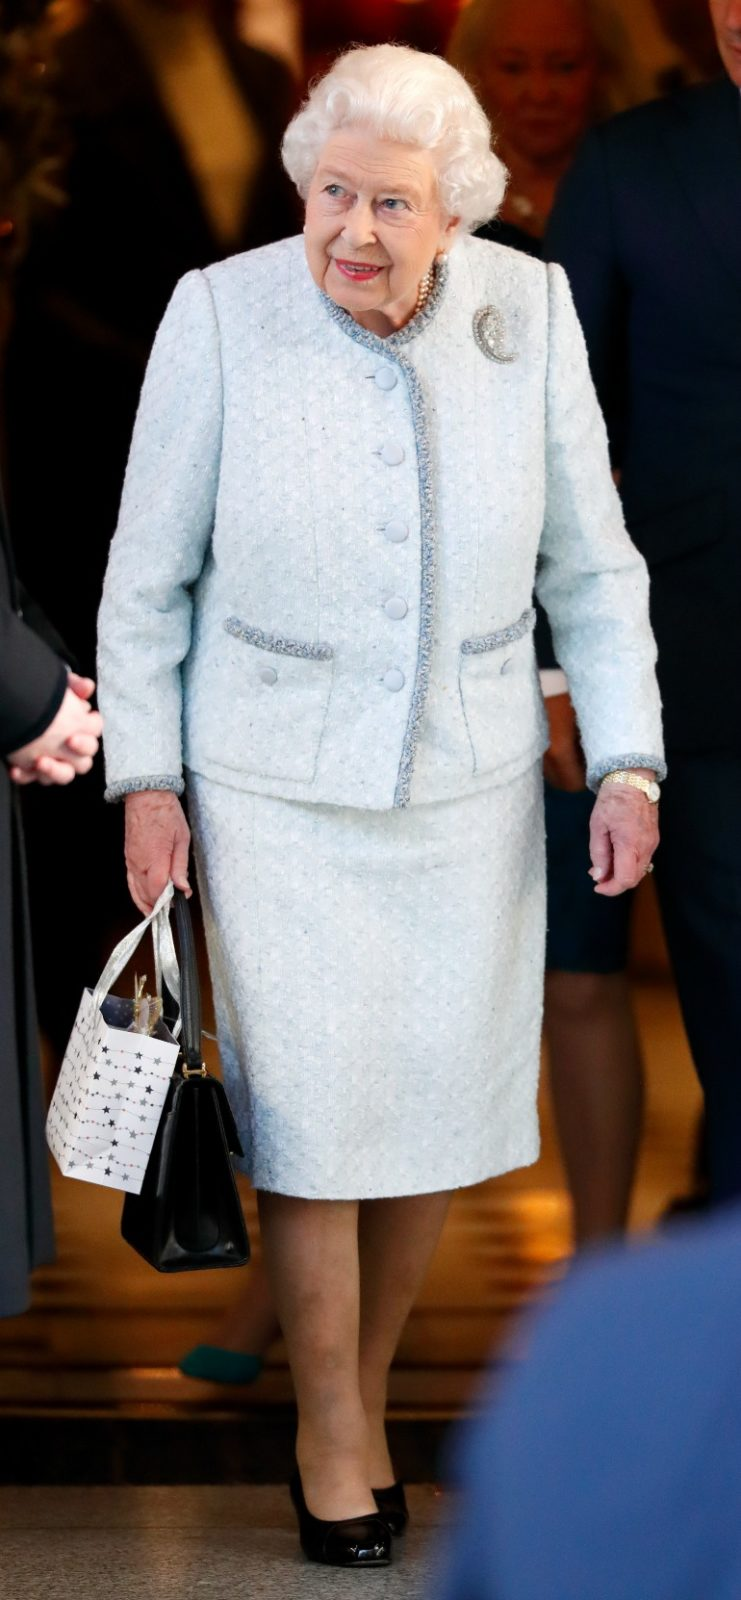 Queen Elizabeth stepped out in a gorgeous winter ensemble to attend a Christmas lunch on Tuesday. Source: Getty